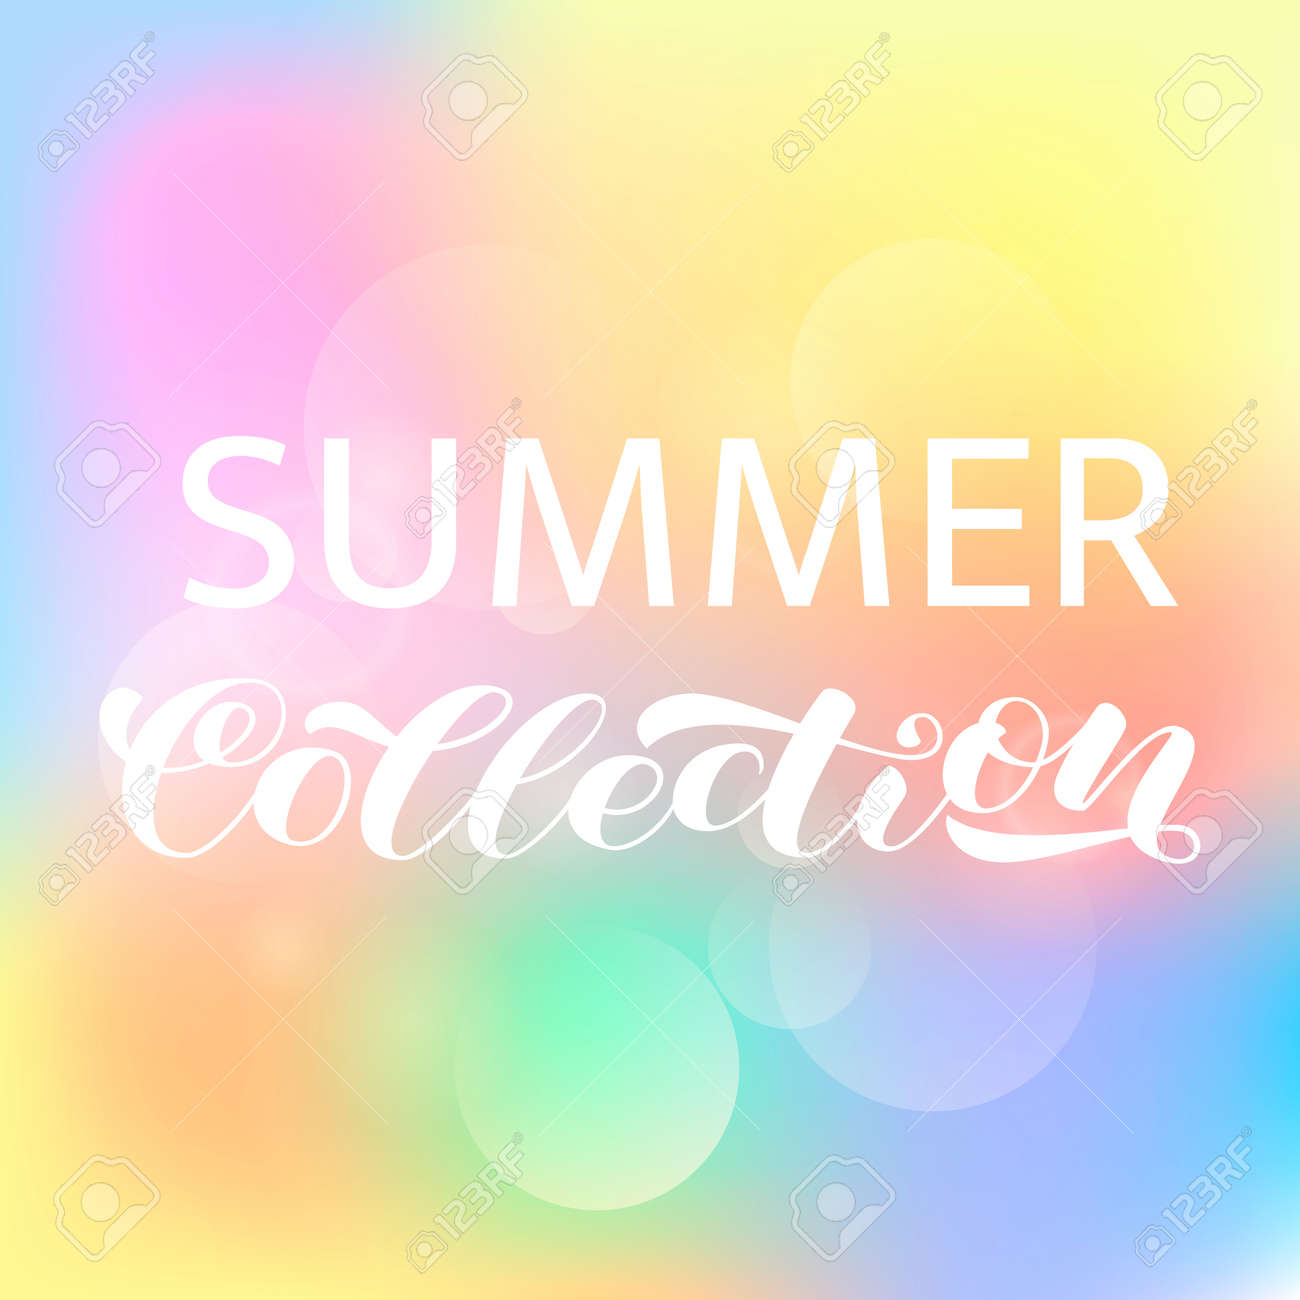 Summer collection brush lettering. Vector illustration for poster or card - 128373907